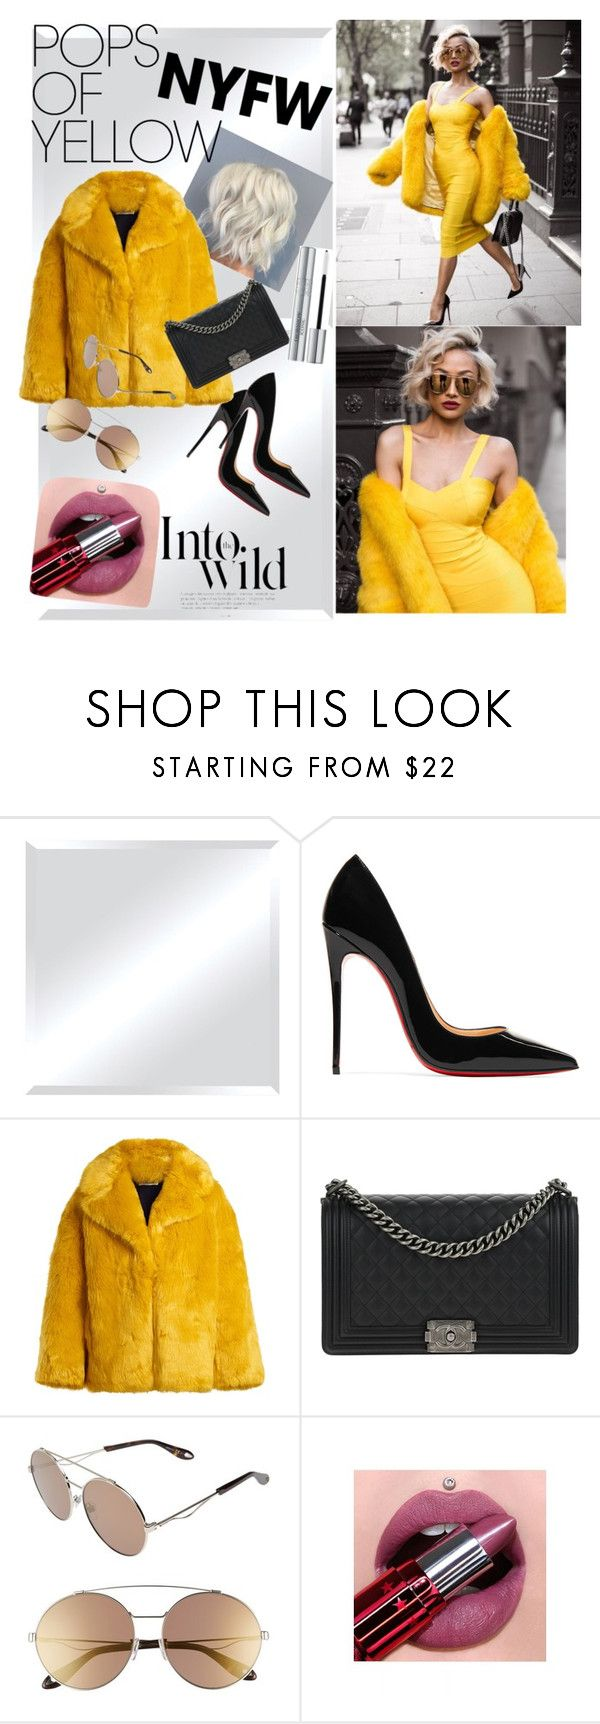 """Curvy Hips and Purple-Pinkishy Lips"" by whiteoutxxxx ❤ liked on Polyvore featuring Renwil, Christian Louboutin, Diane Von Furstenberg, Chanel, Givenchy, Christian Dior, Anja, PopsOfYellow and NYFWYellow"